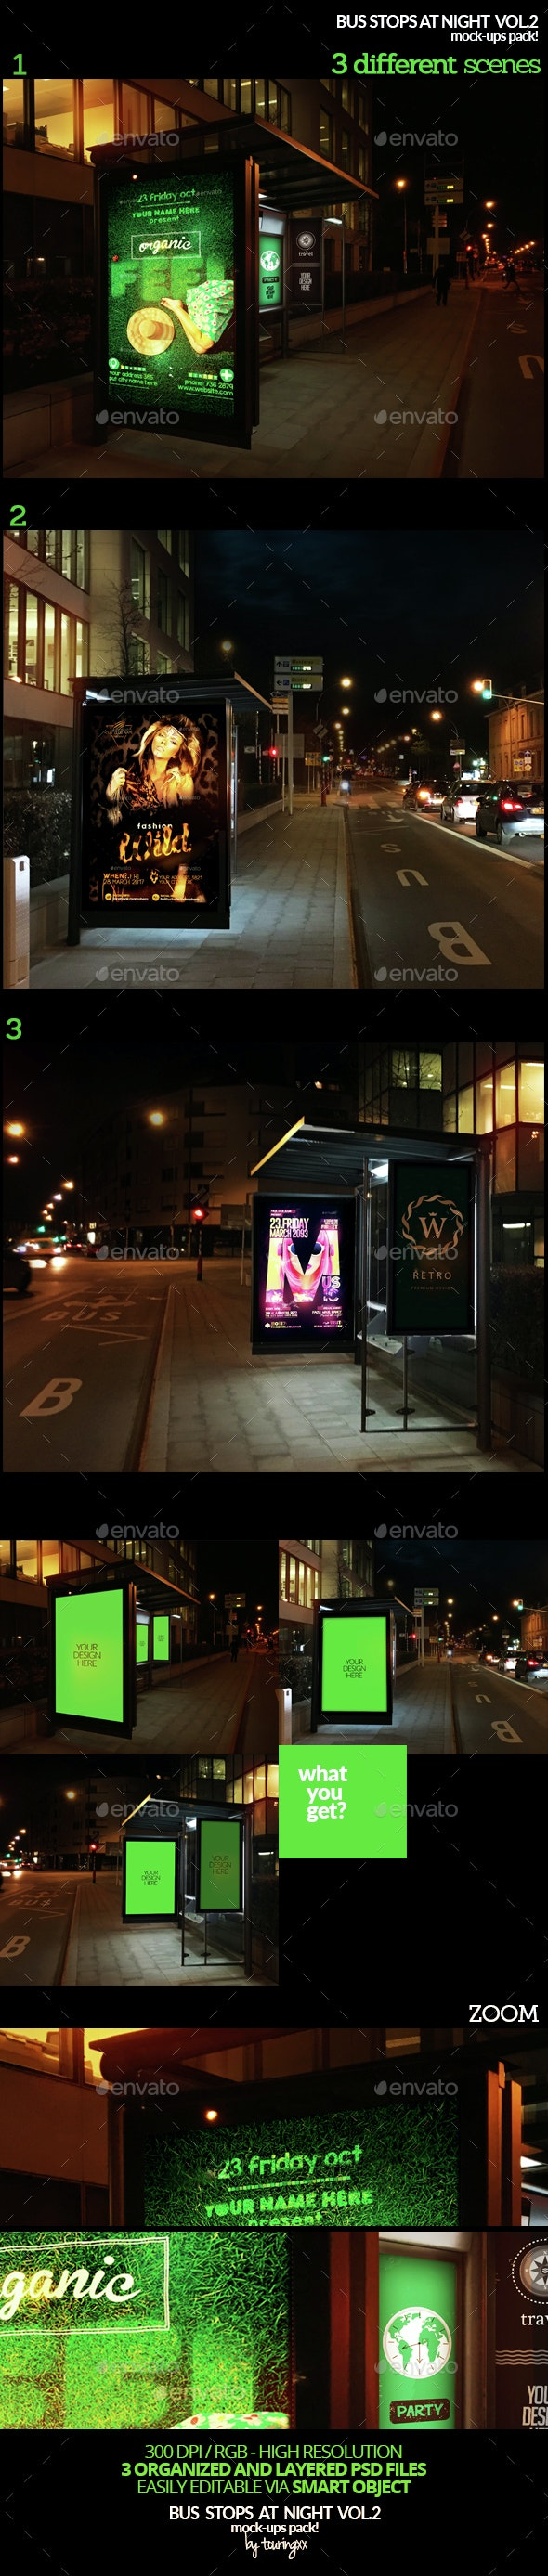 Bus Stops At Night Vol.2 Mock-Ups Pack - Product Mock-Ups Graphics